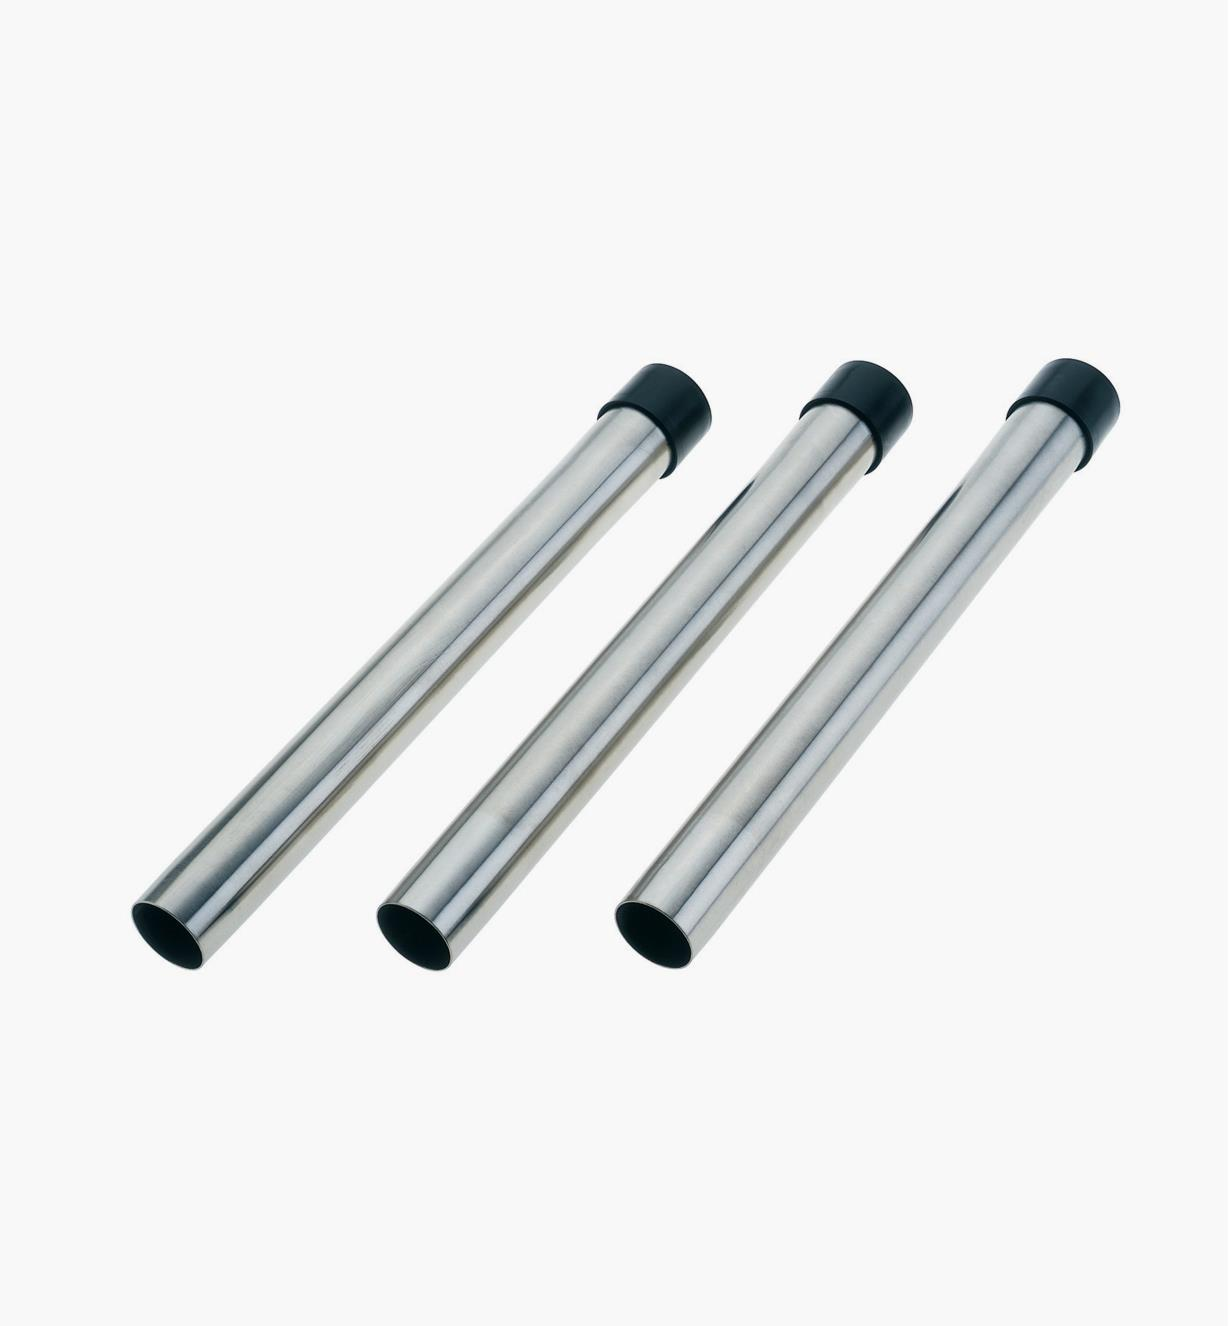 ZA452902 - Stainless-Steel Extension Pipe